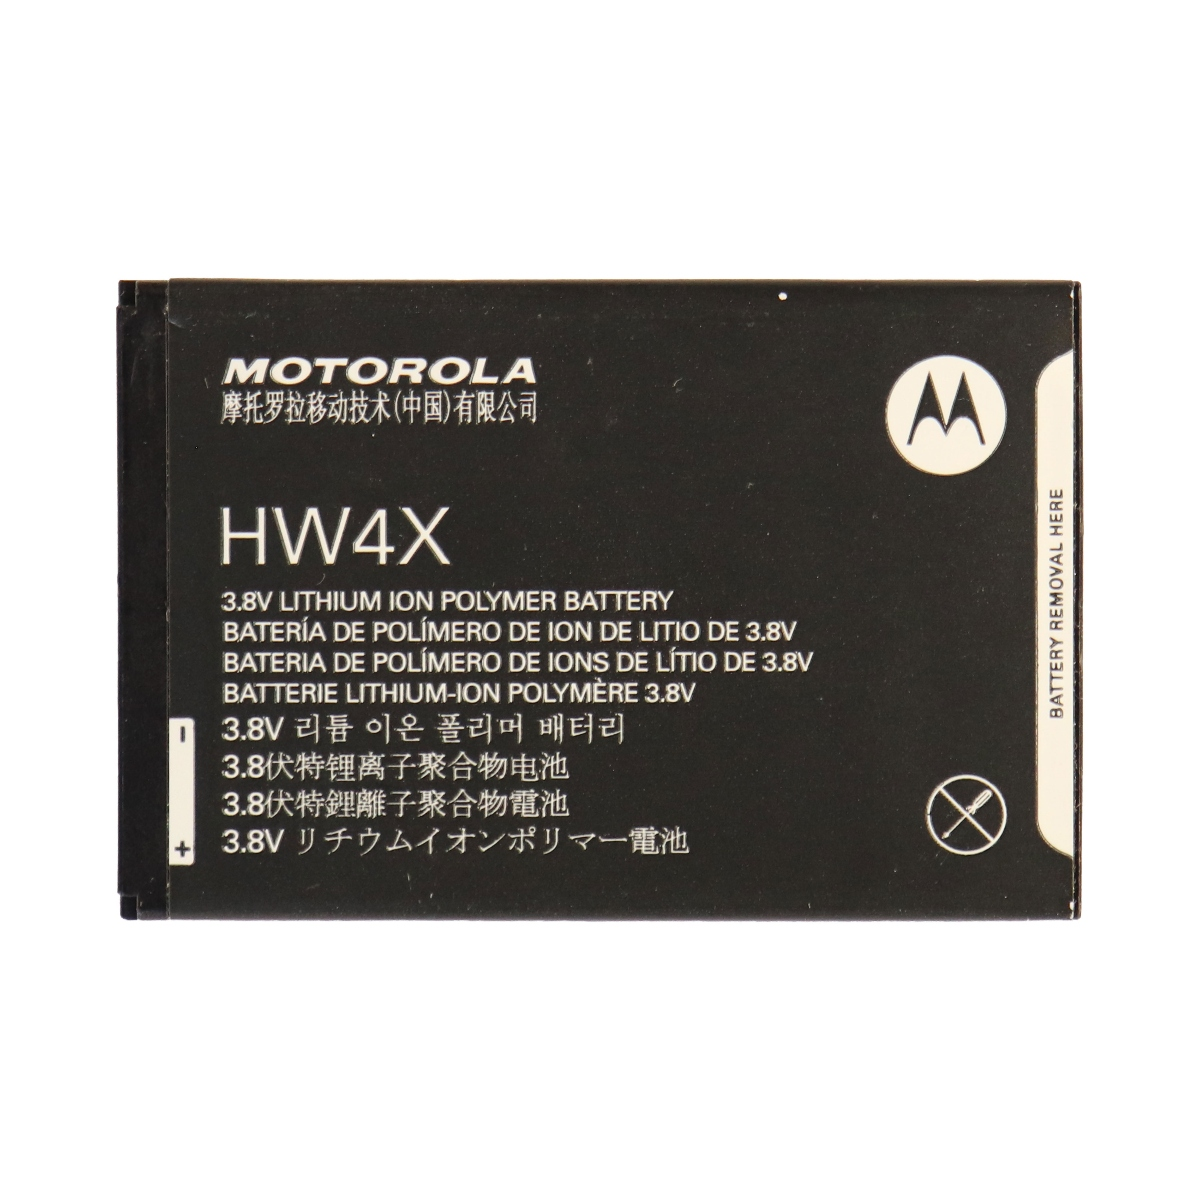 OEM Motorola HW4X /SN5892A 1735 mAh Replacement Battery for Droid Bionic